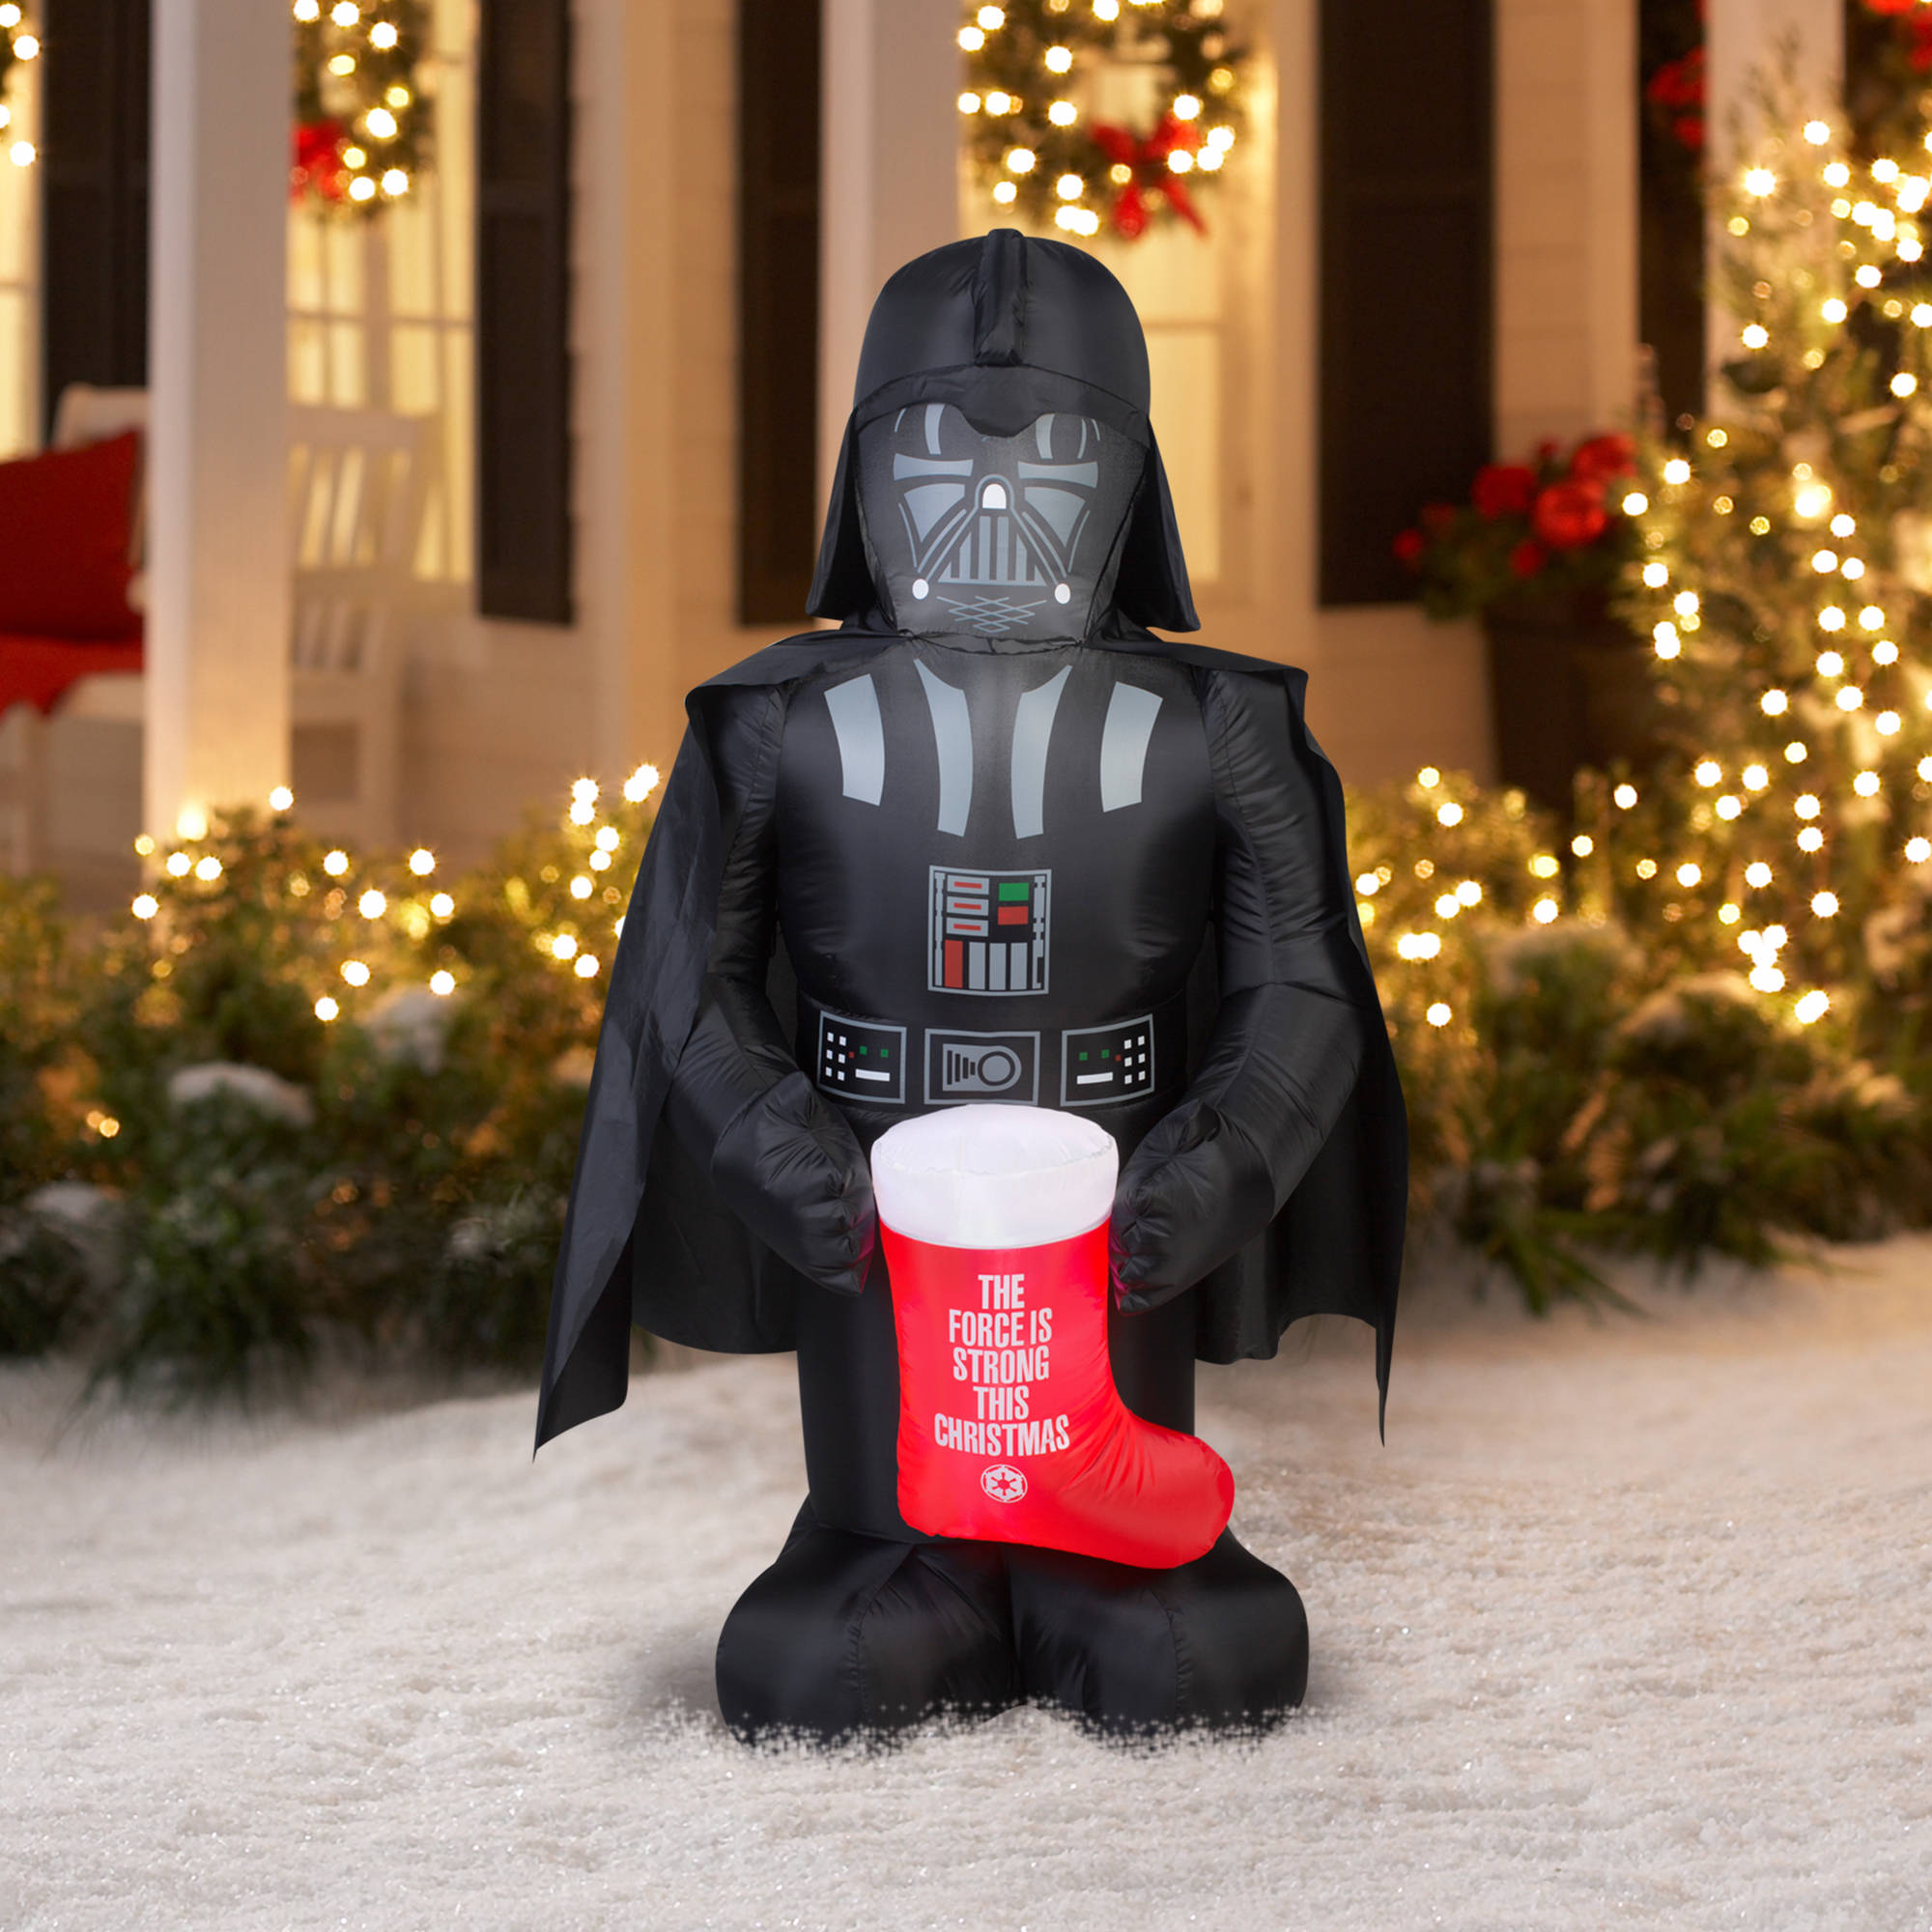 5 airblown inflatable darth vader with stocking star wars christmas inflatable walmartcom - Walmart Christmas Yard Decorations